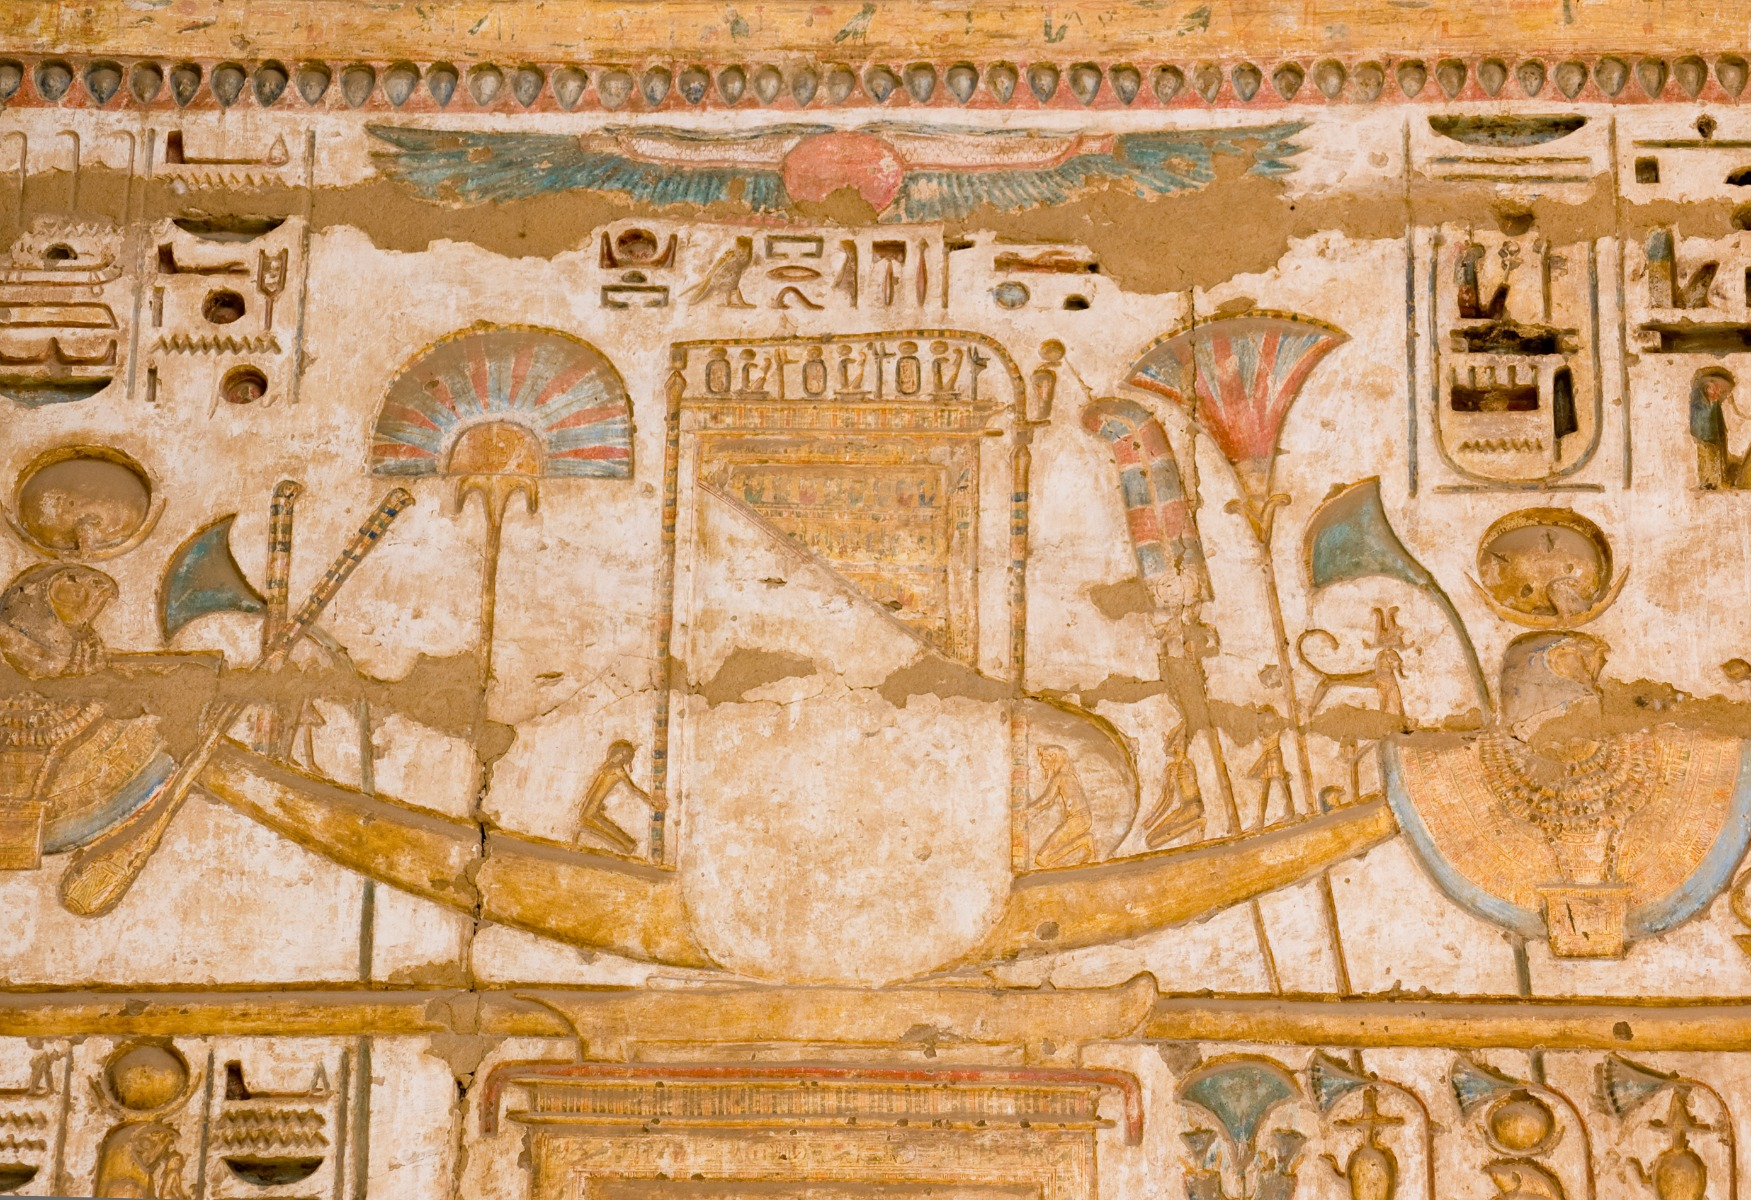 Find out now about the Ancient Egyptian Transportation and about more Thrilling Facts in Ancient Egypt, Read now and Share your thoughts via the comments